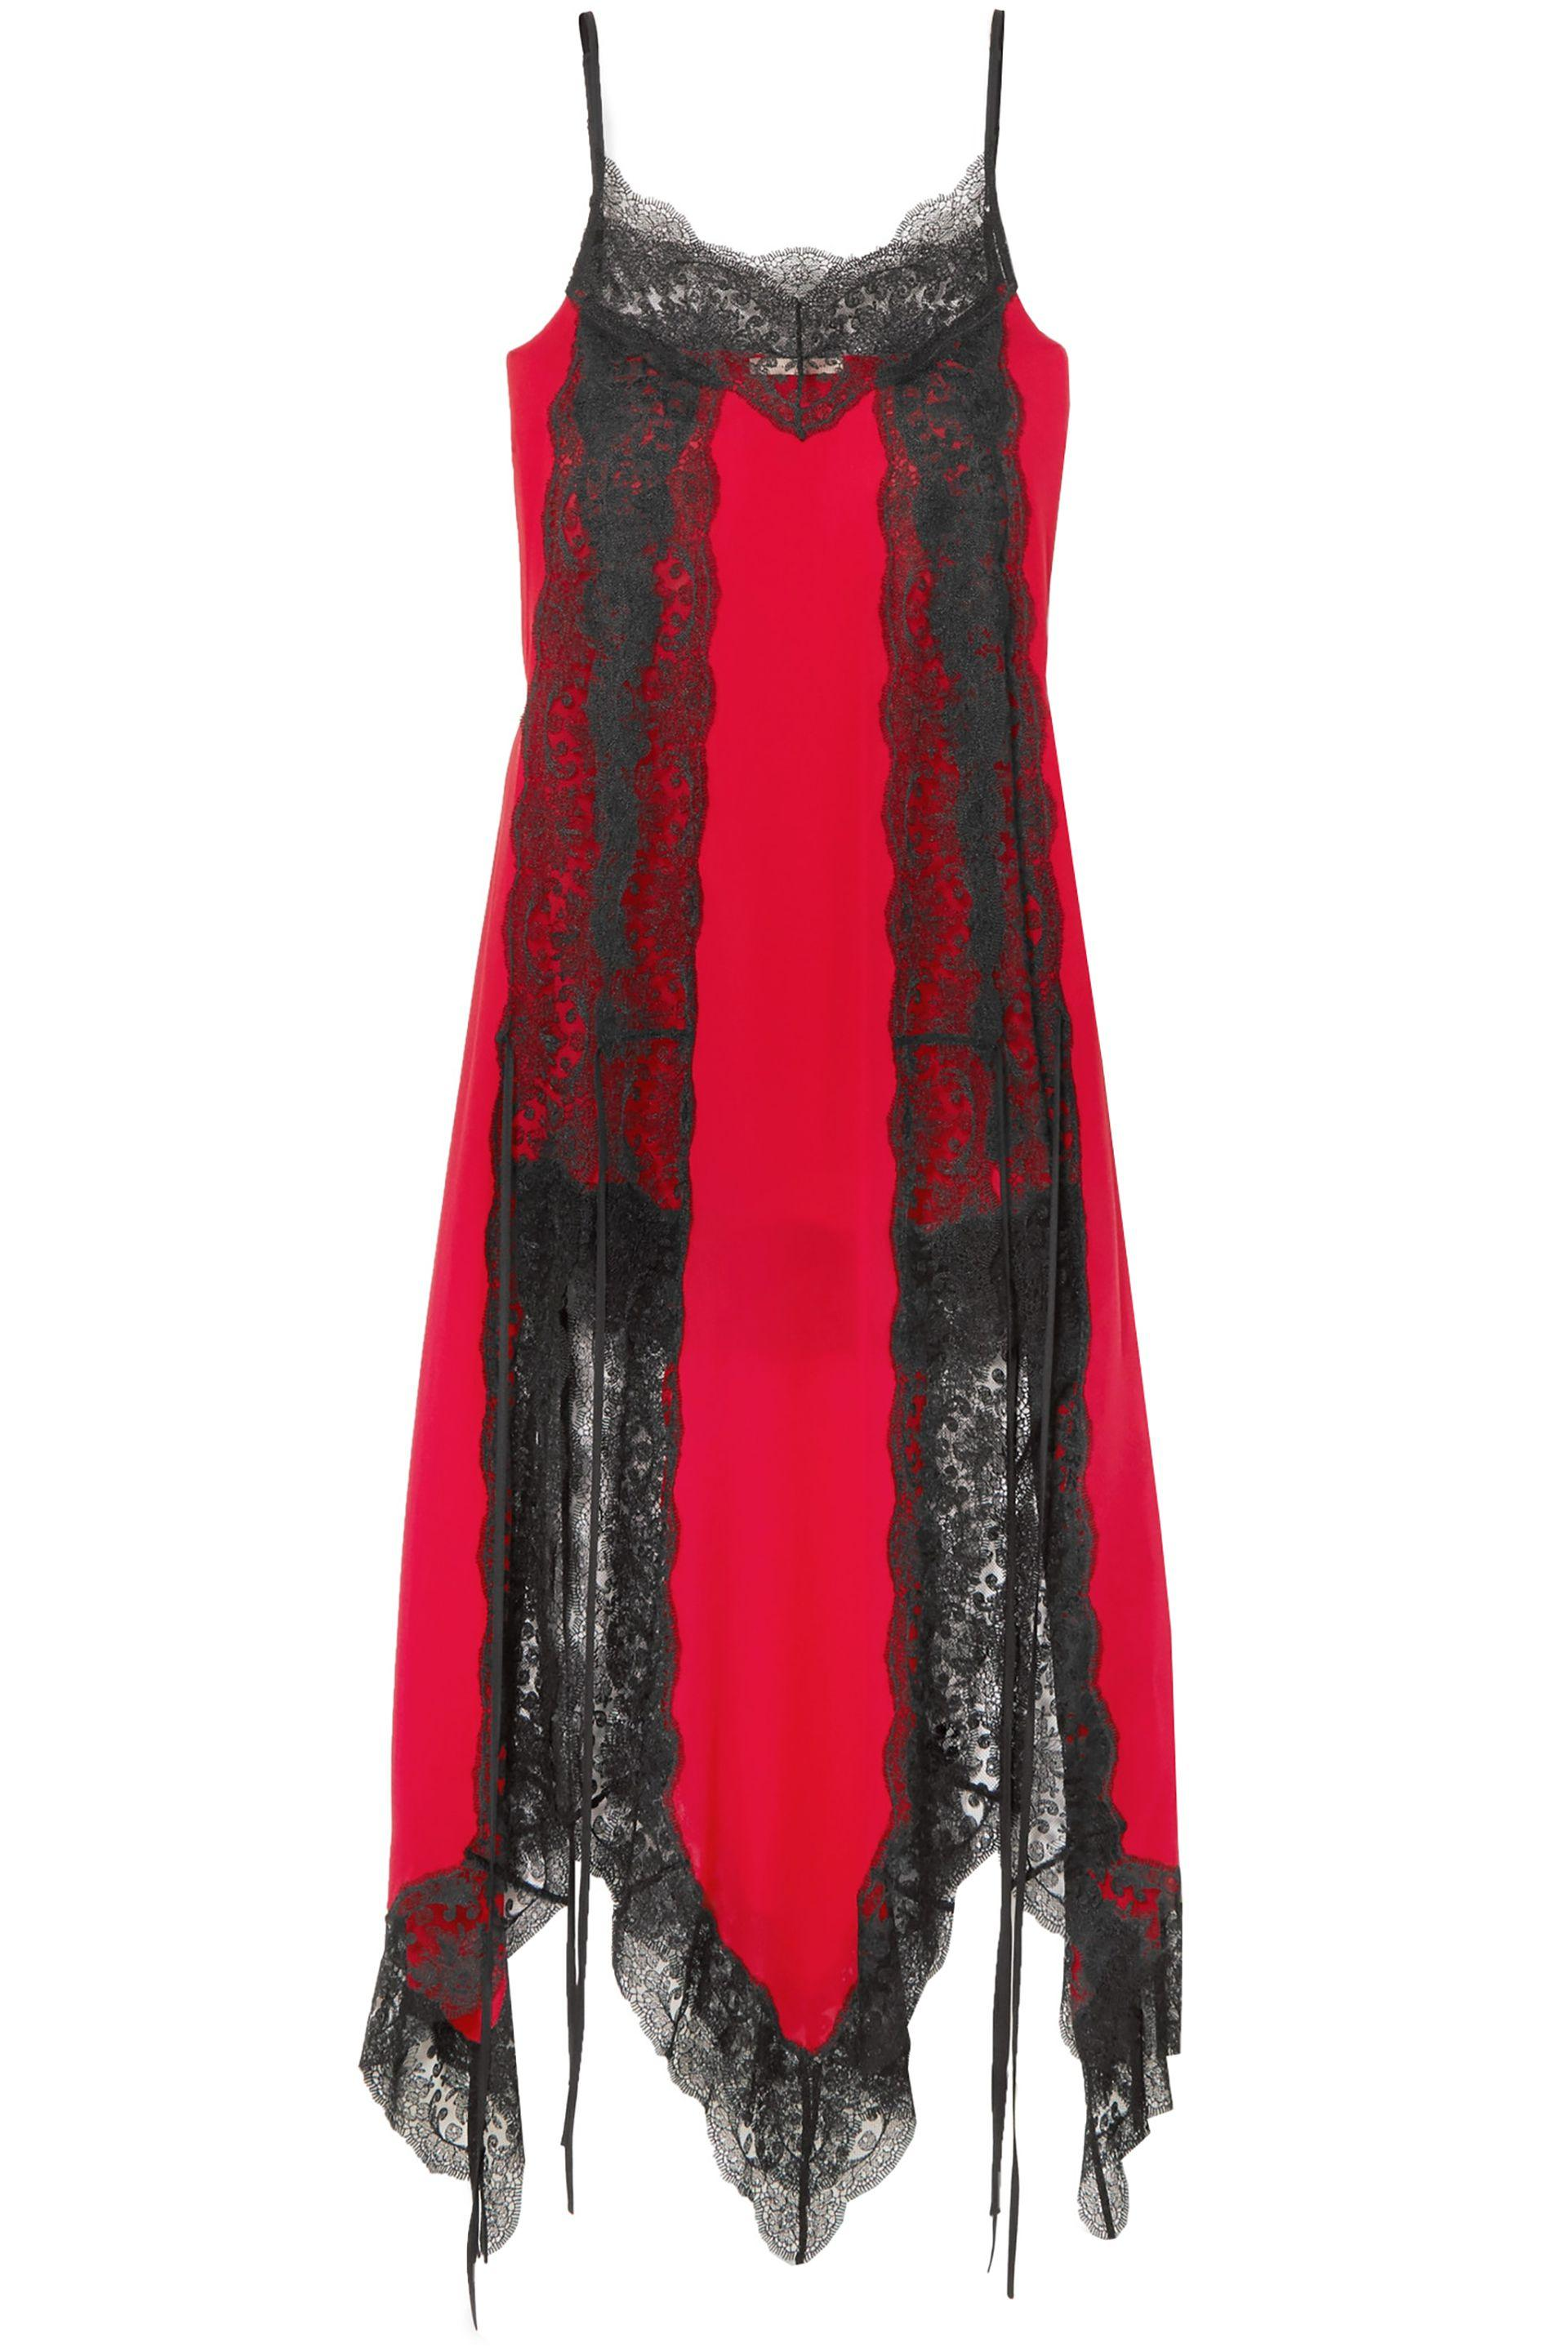 54ea64ec00ac Christopher Kane Woman Lace-trimmed Silk-chiffon Dress Red in Red ...